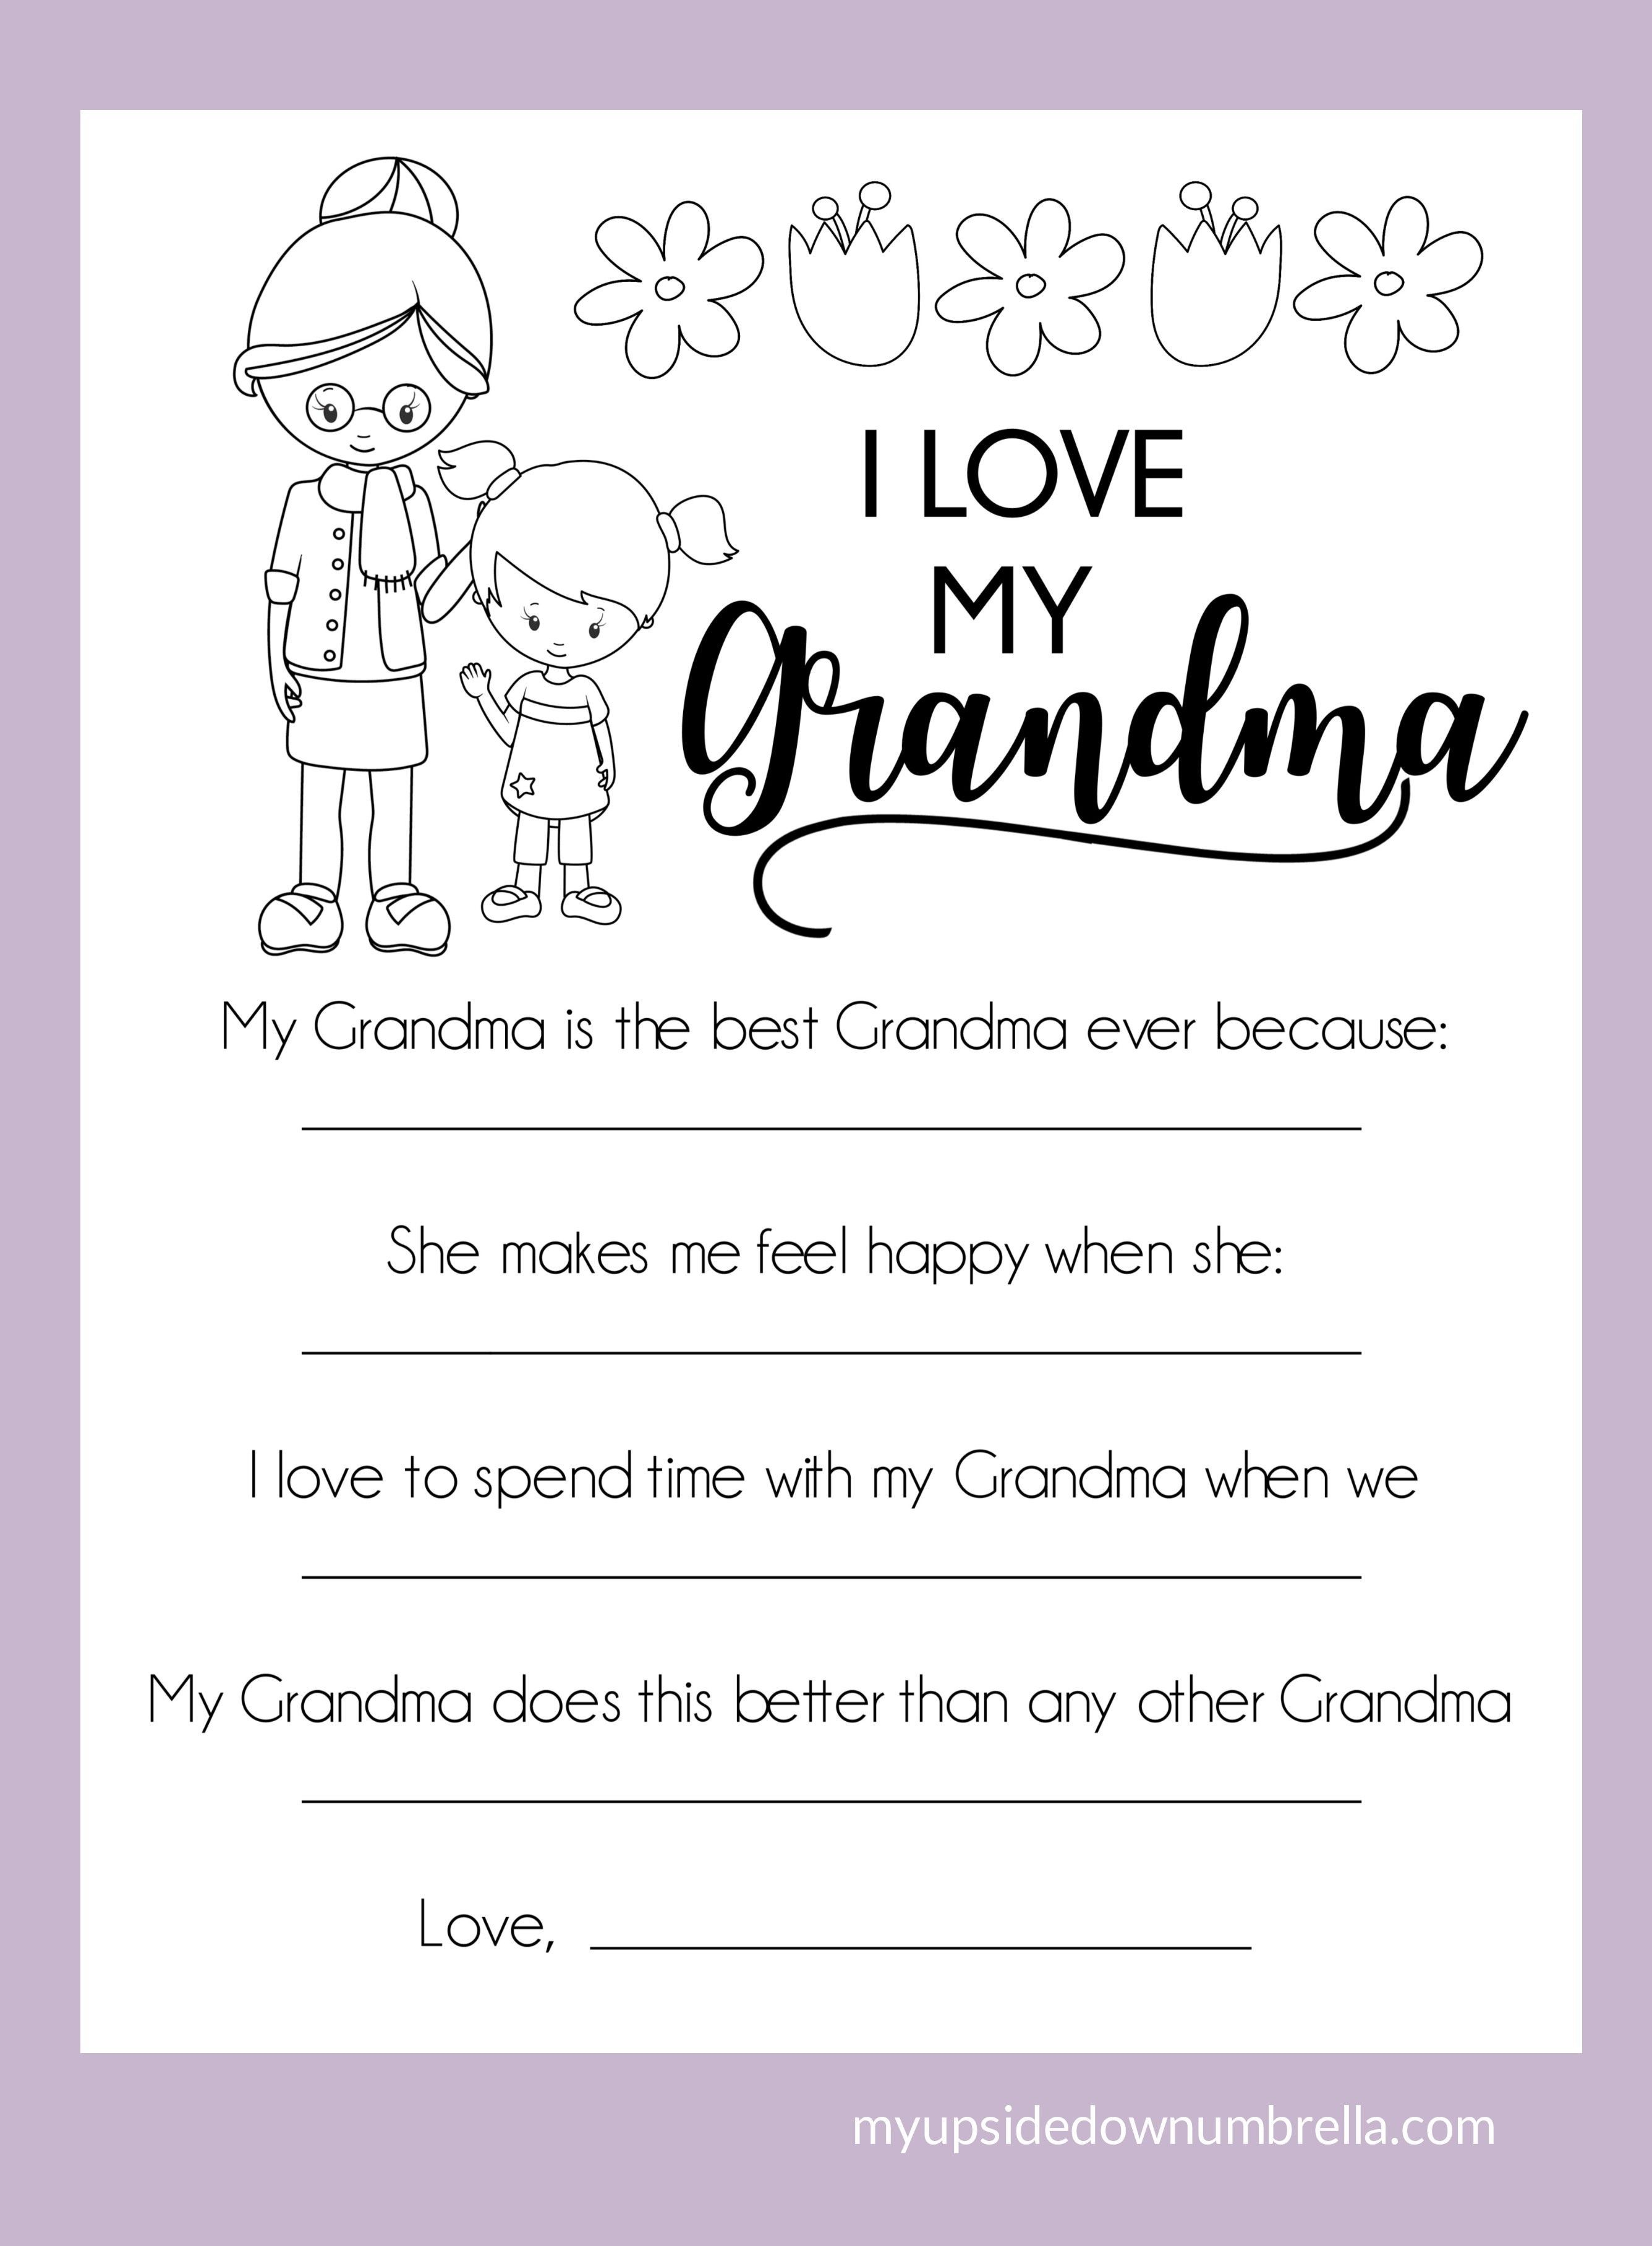 All About My Mom Mother S Day Printable My Upside Down Umbrella Birthday Gifts For Grandma Grandma Birthday Card Happy Birthday Grandma